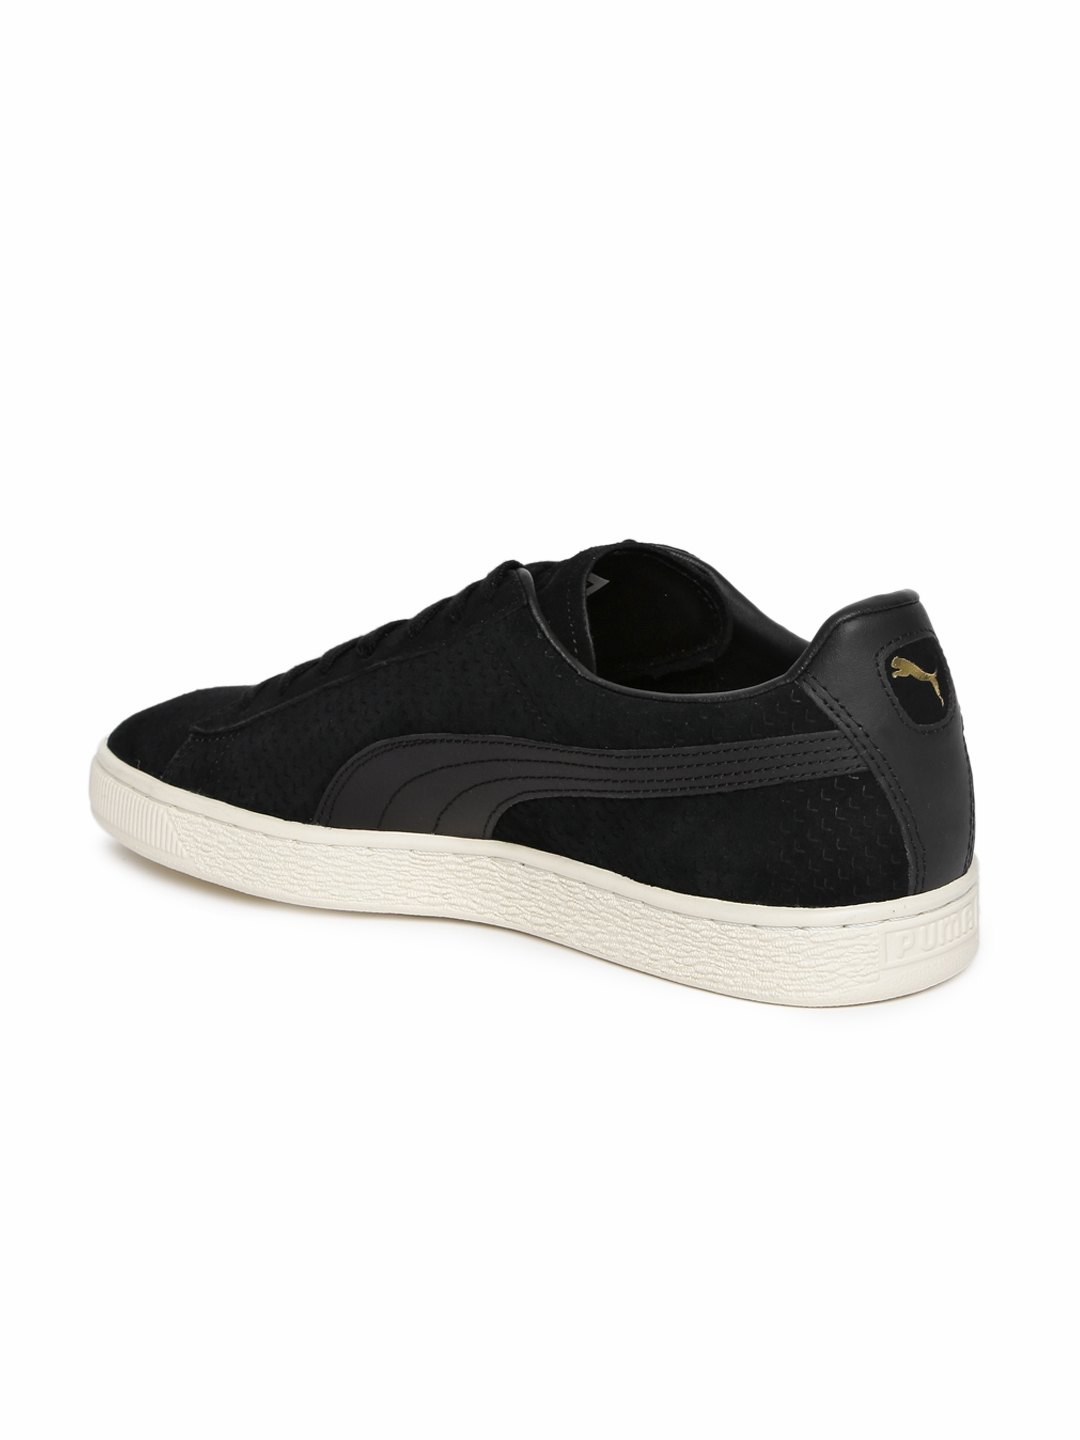 66d6f7b9752 Buy Puma Men Black Suede Classic Perforation Sneakers - Casual Shoes ...